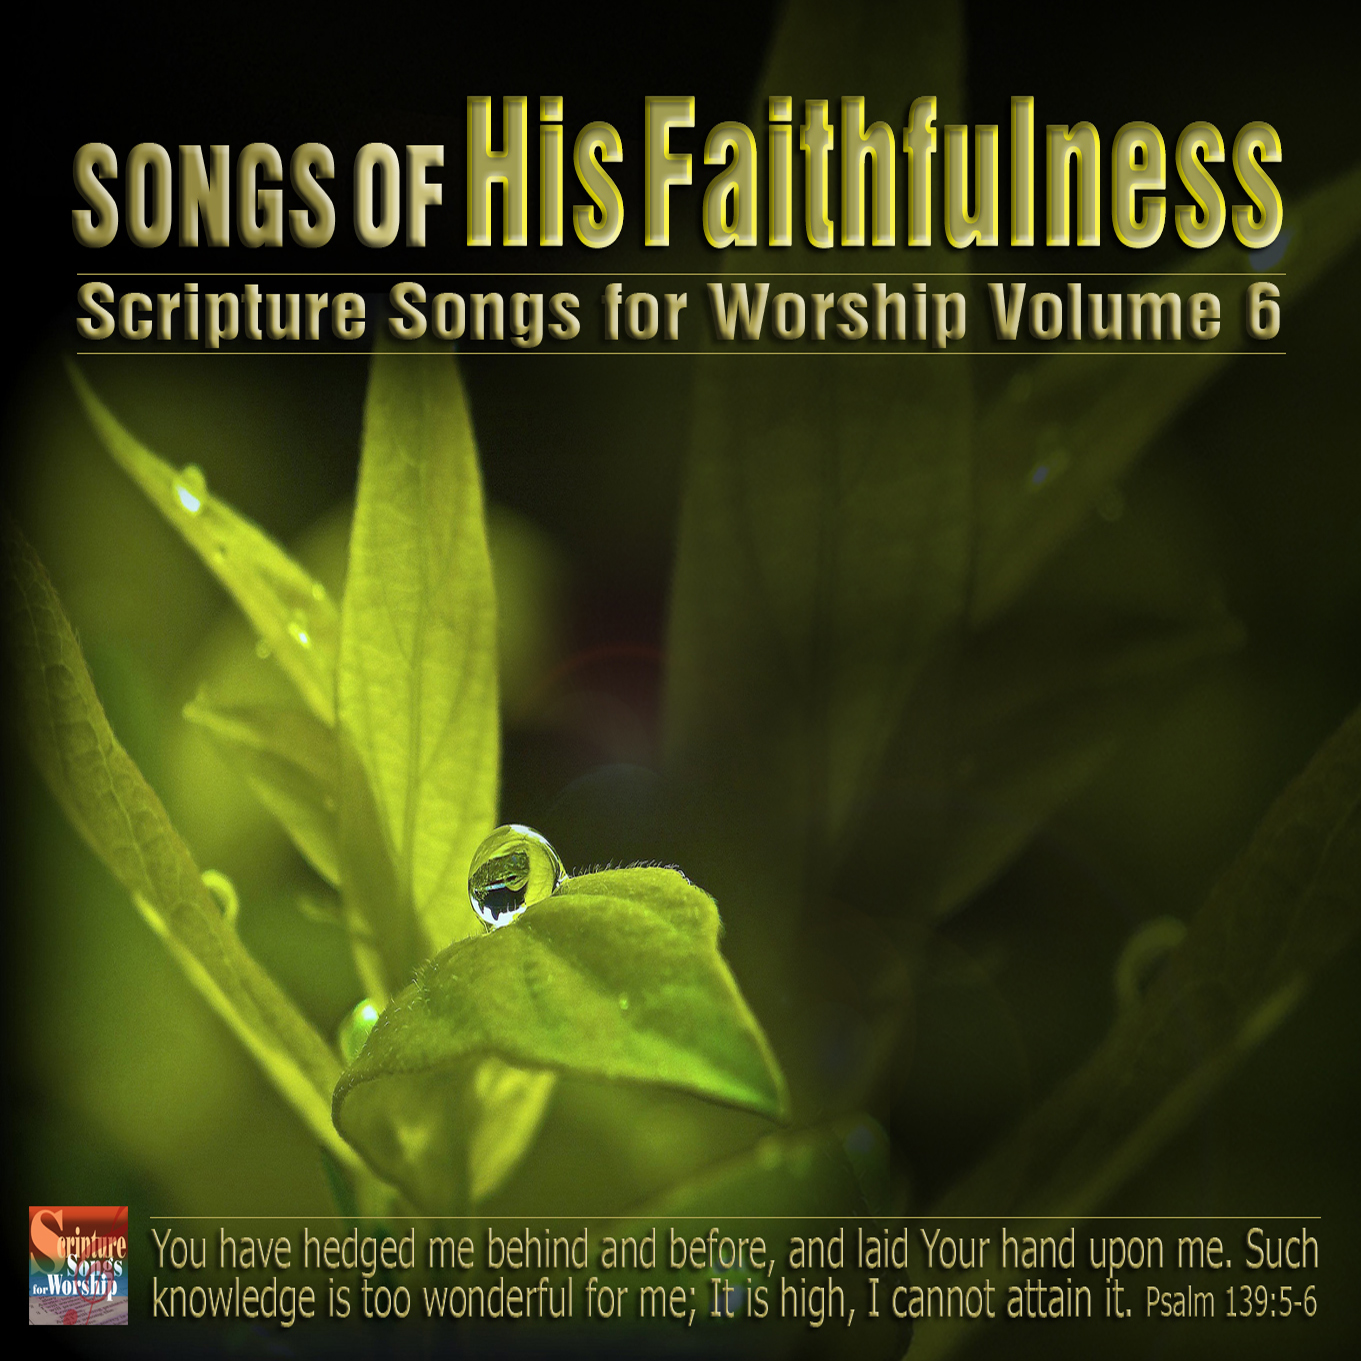 Scripture Songs for Worship : Songs of His Faithfulness